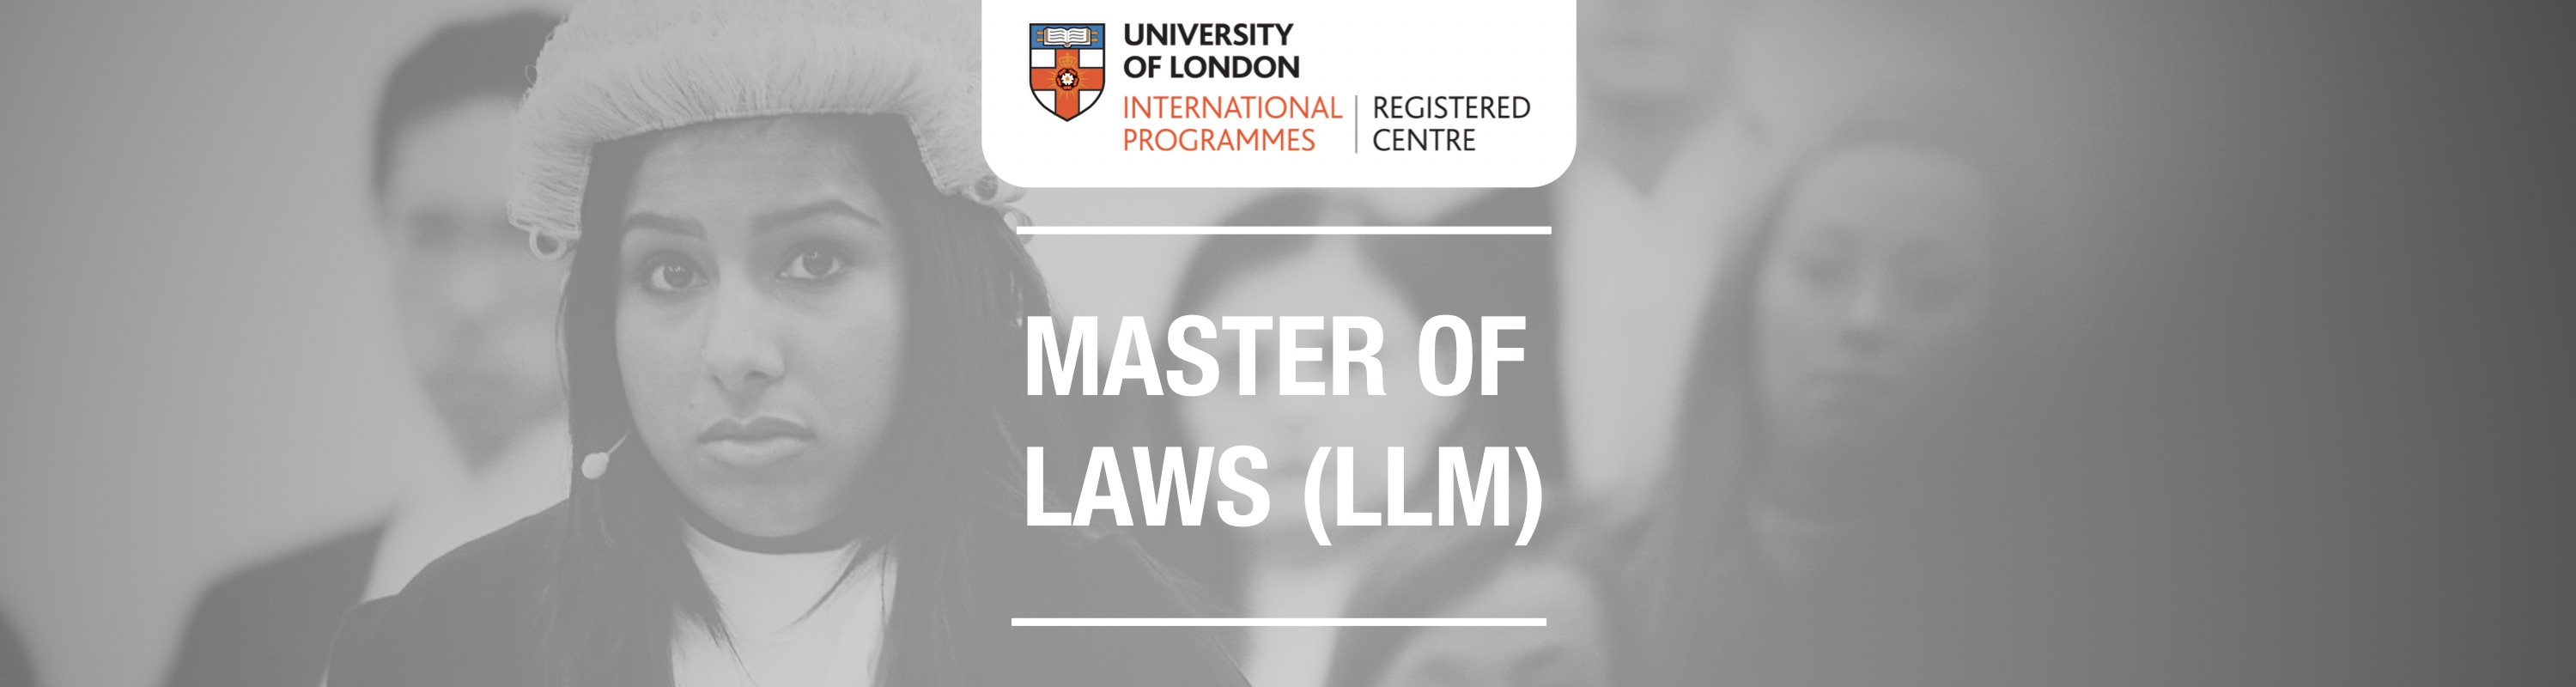 Master of Laws (LLM)